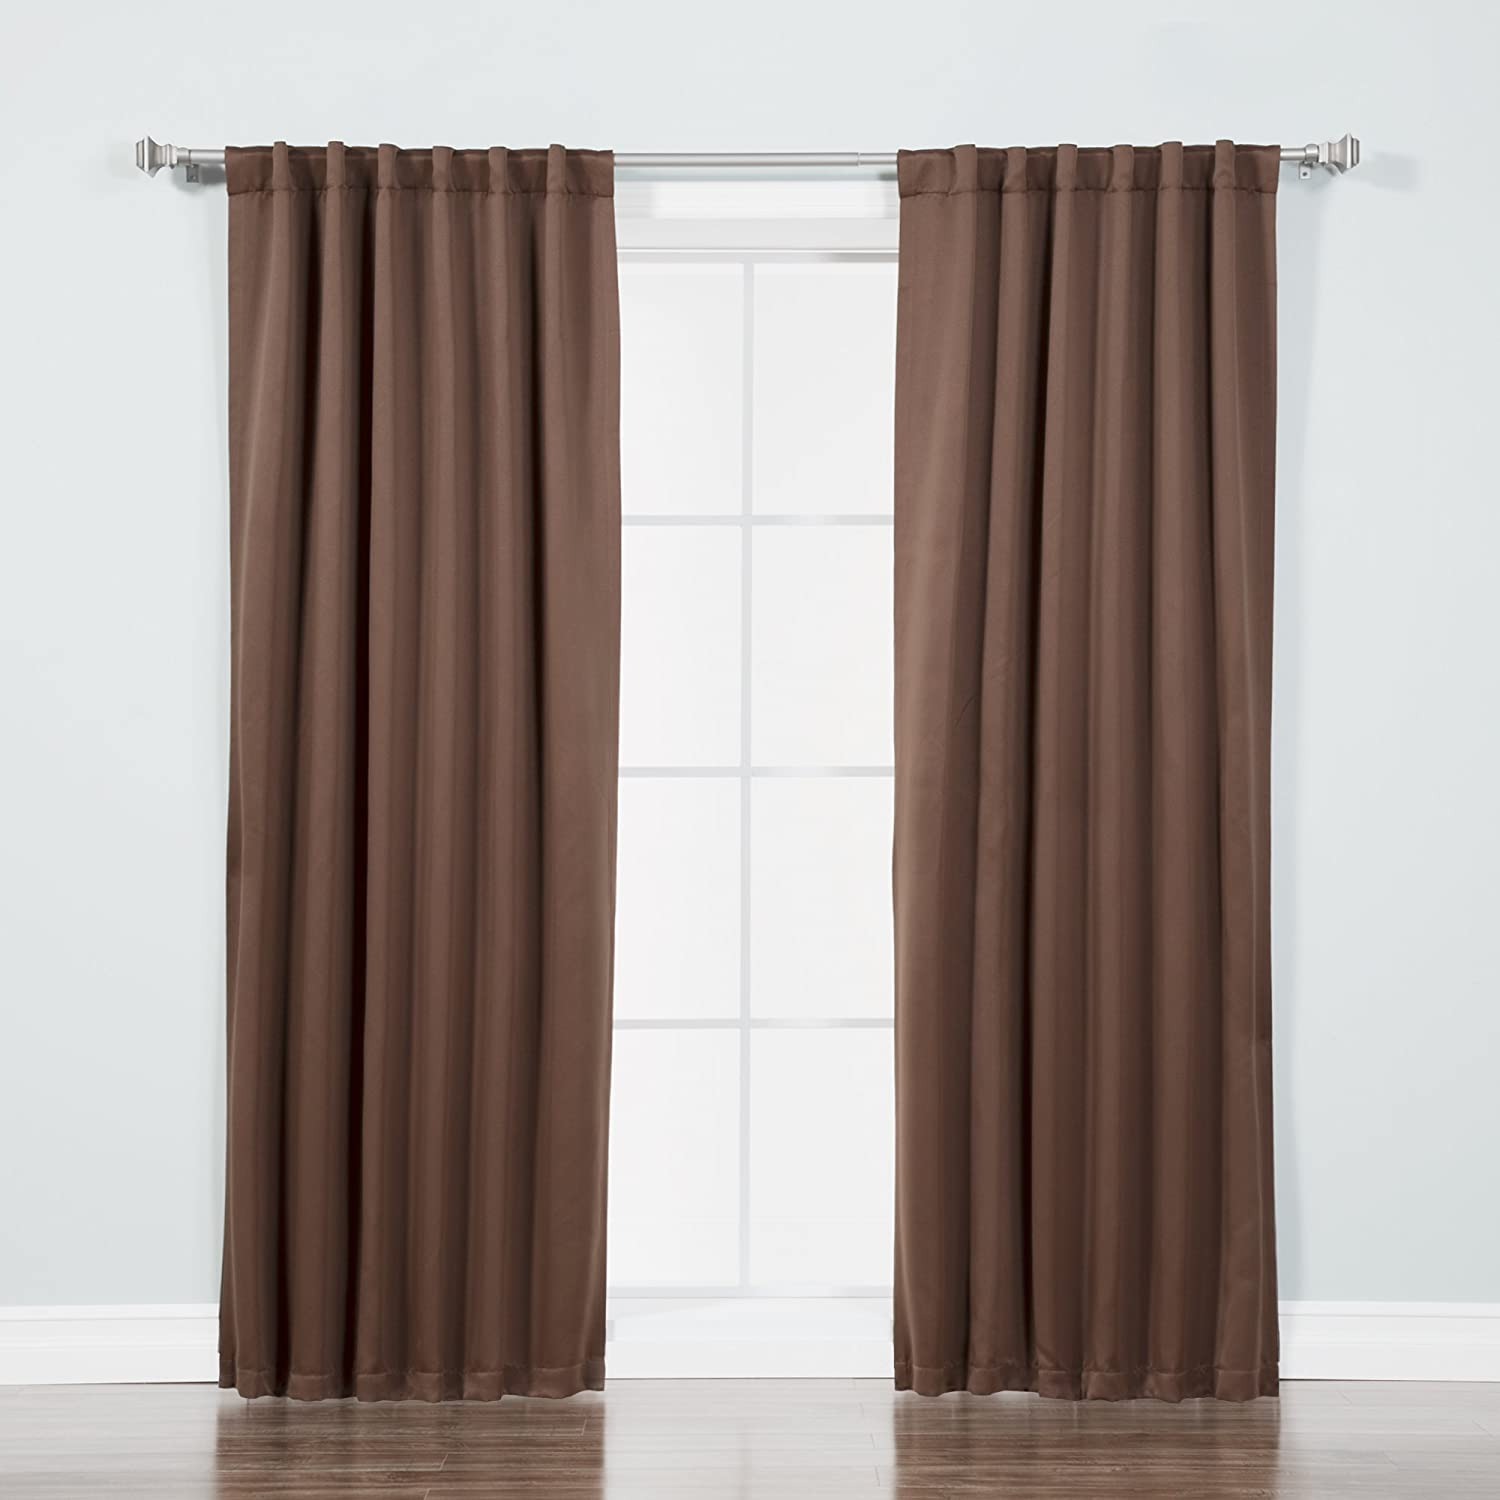 "Best Home Fashion Basic Thermal Insulated Blackout Curtains - Back Tab/Rod Pocket - Chocolate- 52"" W x 84"" L – (Set of 2 Panels)"